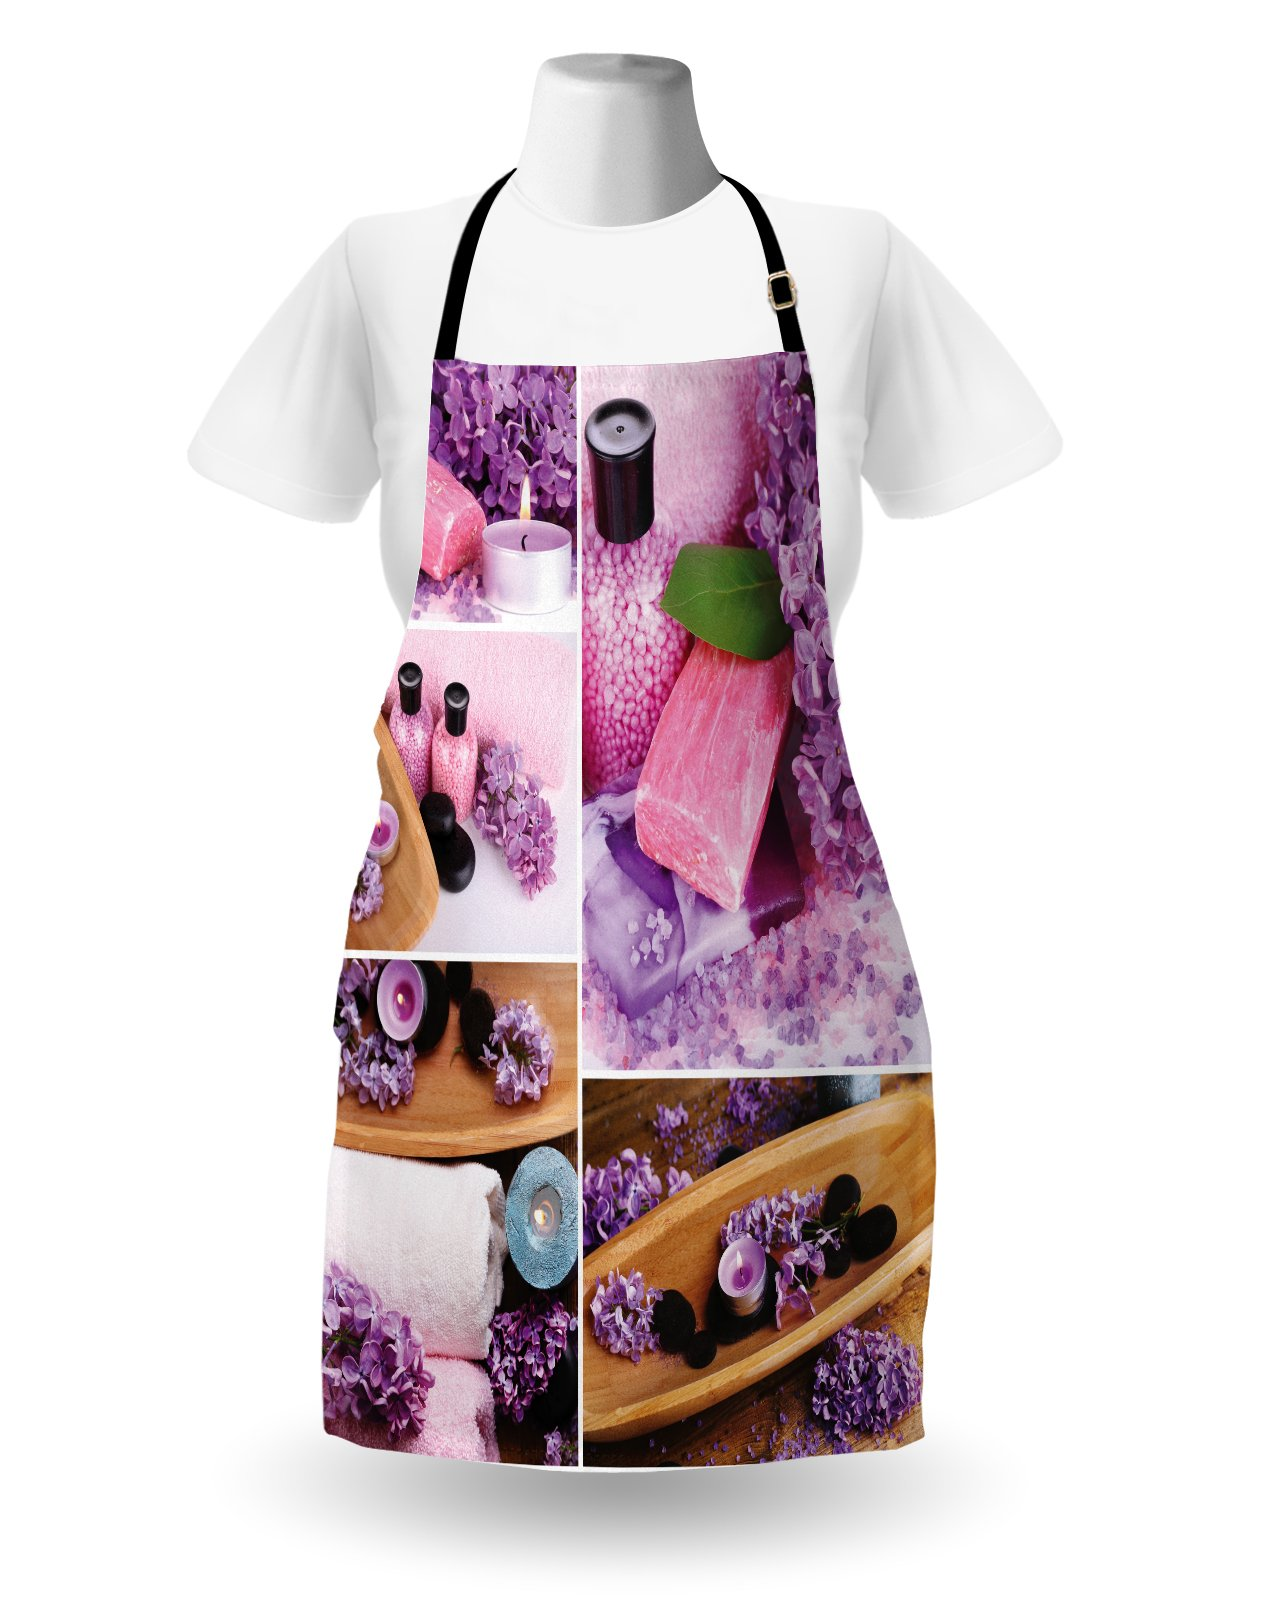 Lunarable Spa Apron, Aromatic Spa with Lilac Petals Fresh Therapy Oils Bath Salt Soap Relax Meditation Collage, Unisex Kitchen Bib Apron with Adjustable Neck for Cooking Baking Gardening, Violet by Lunarable (Image #2)